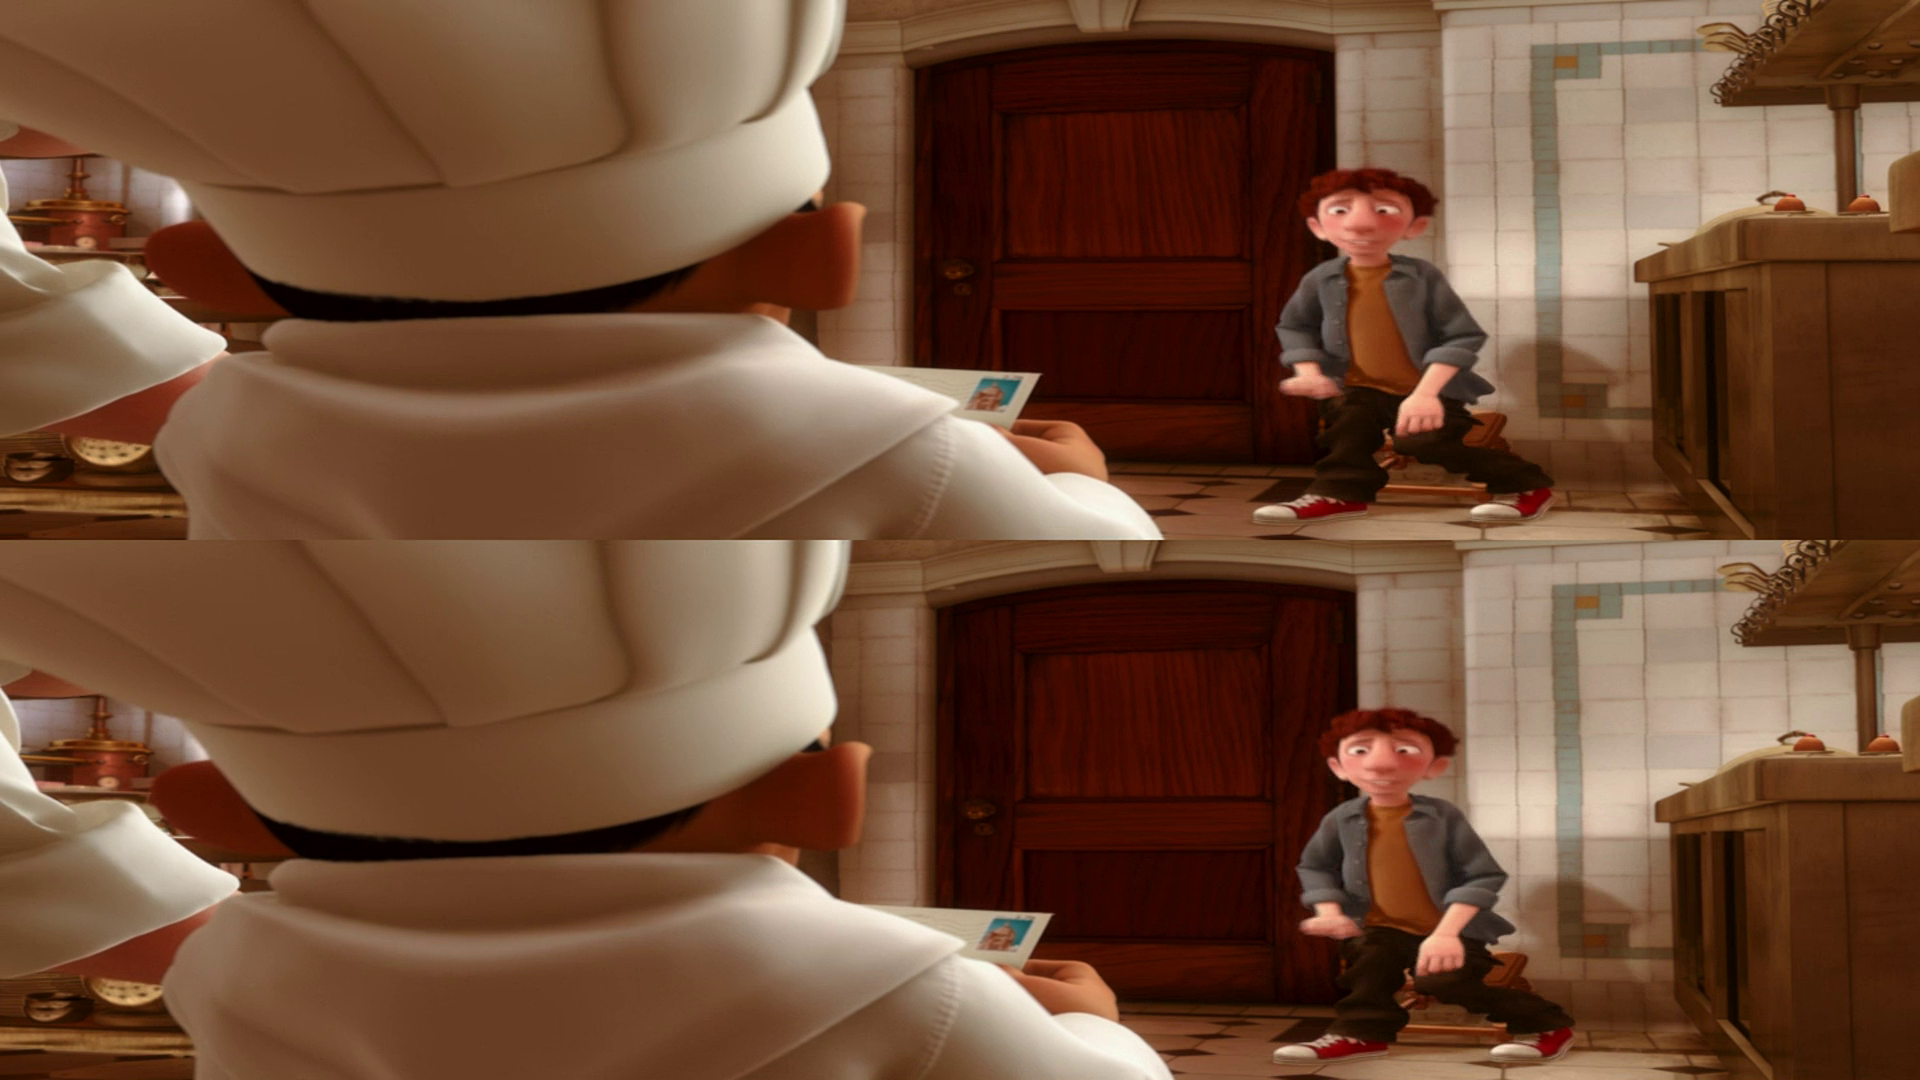 Ratatouille / Рататуй [3D] [2007 / BDRip 1080p] [Animation / Fantasy / Comedy]